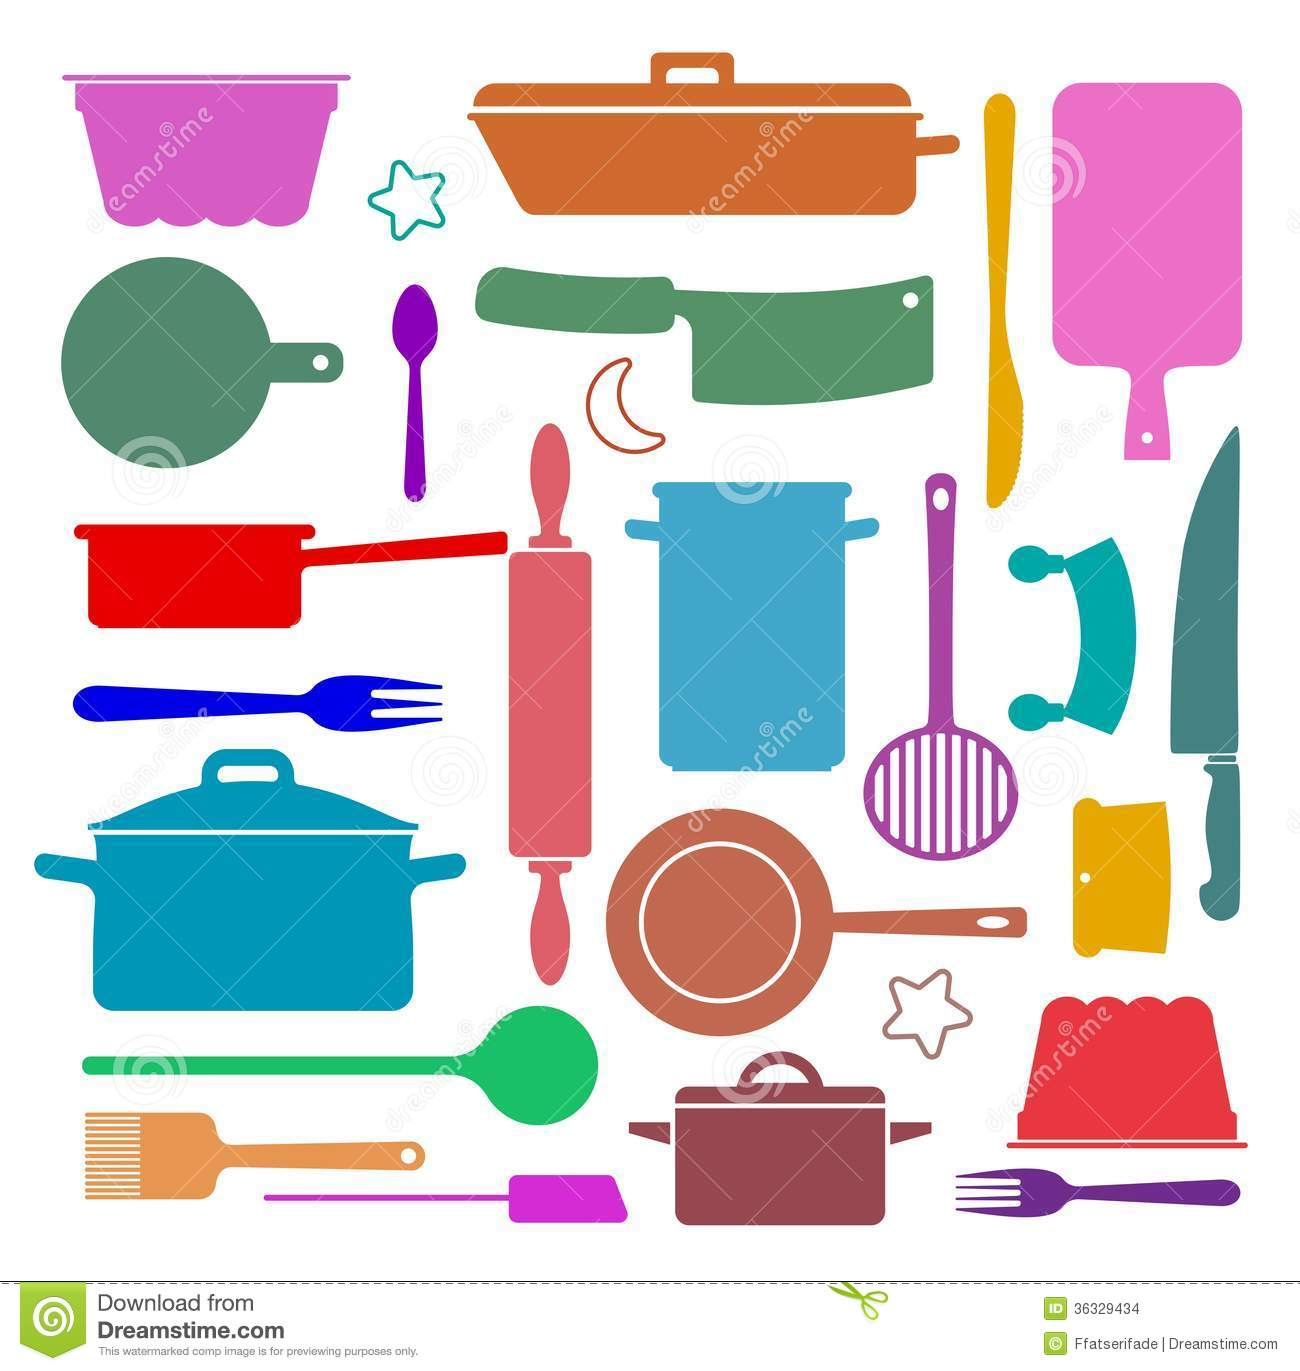 Kitchen Utensils Wallpaper cooking stock image - image: 36035511